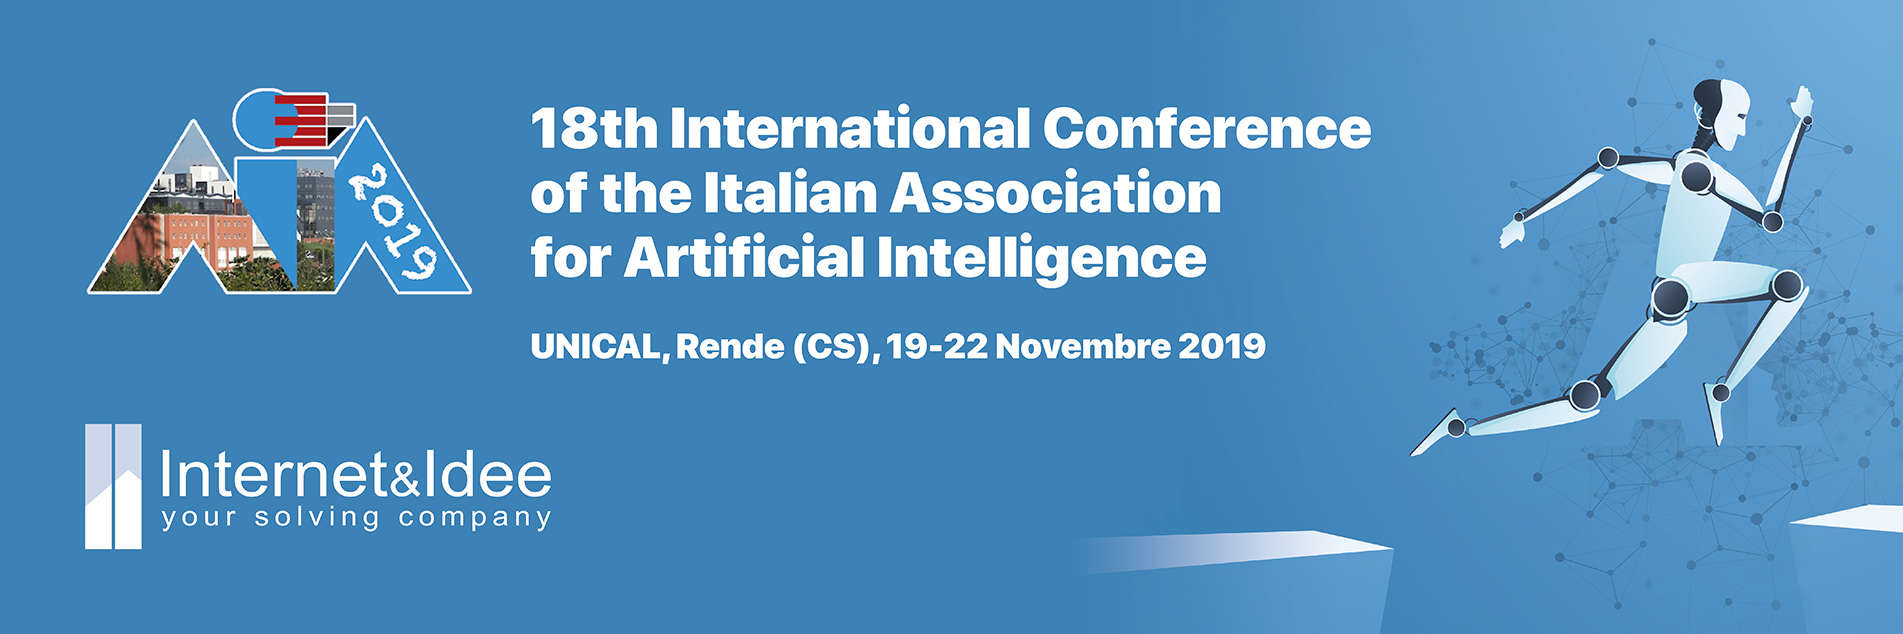 I&I sponsor of the 18th International Conference of the Italian Association for Artificial Intelligence (AIIA 2019)